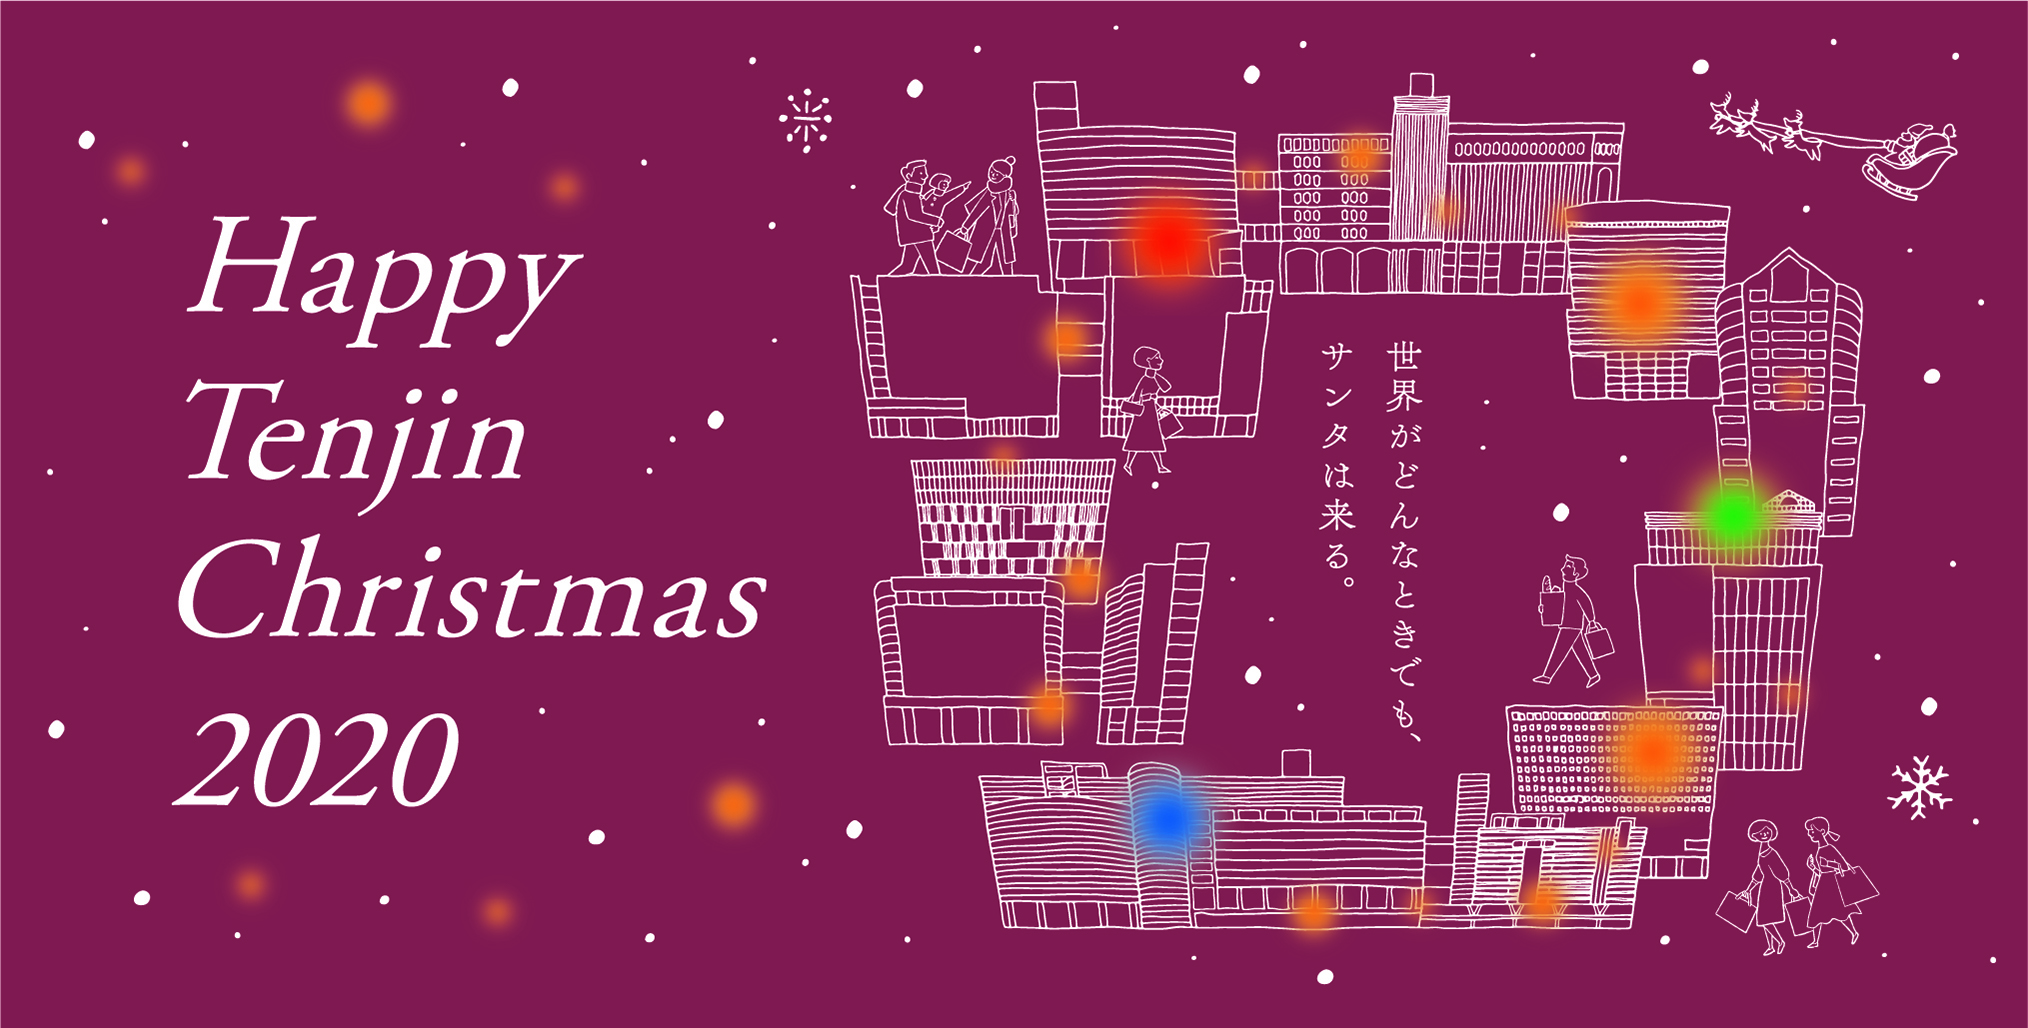 Happy Tenjin Christmas 2020